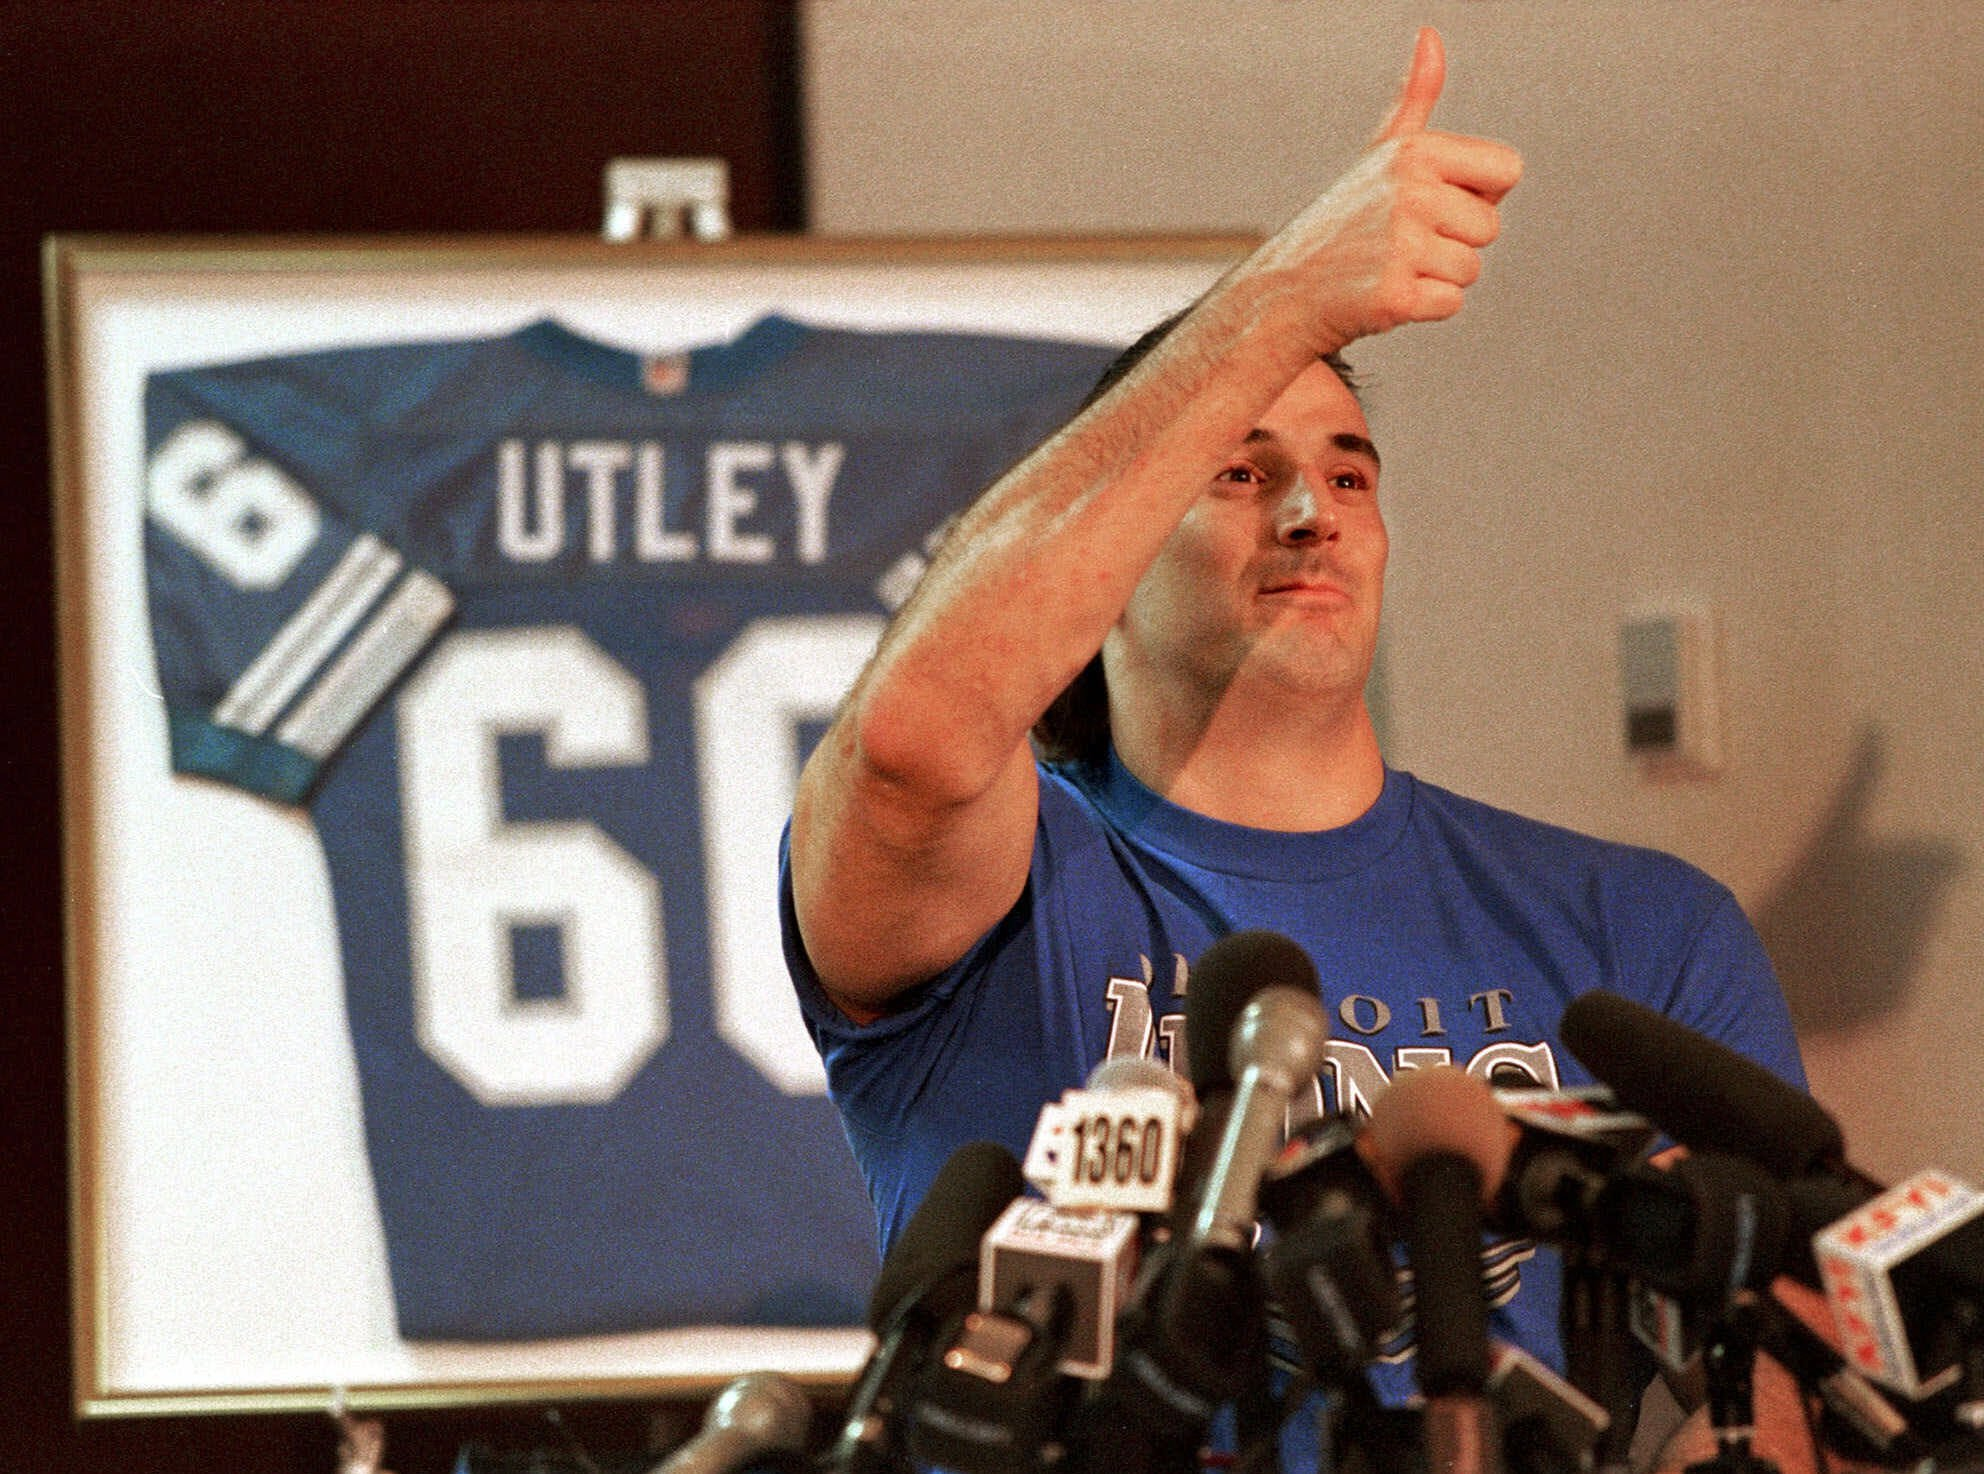 FILE - In this Feb. 15, 1999, file photo, former Detroit Lions guard and Washington State lineman Mike Utley gives the thumbs-up after successfully walking from his wheelchair at a Phoenix hotel. Utley, who suffered a spinal cord injury during an NFL game